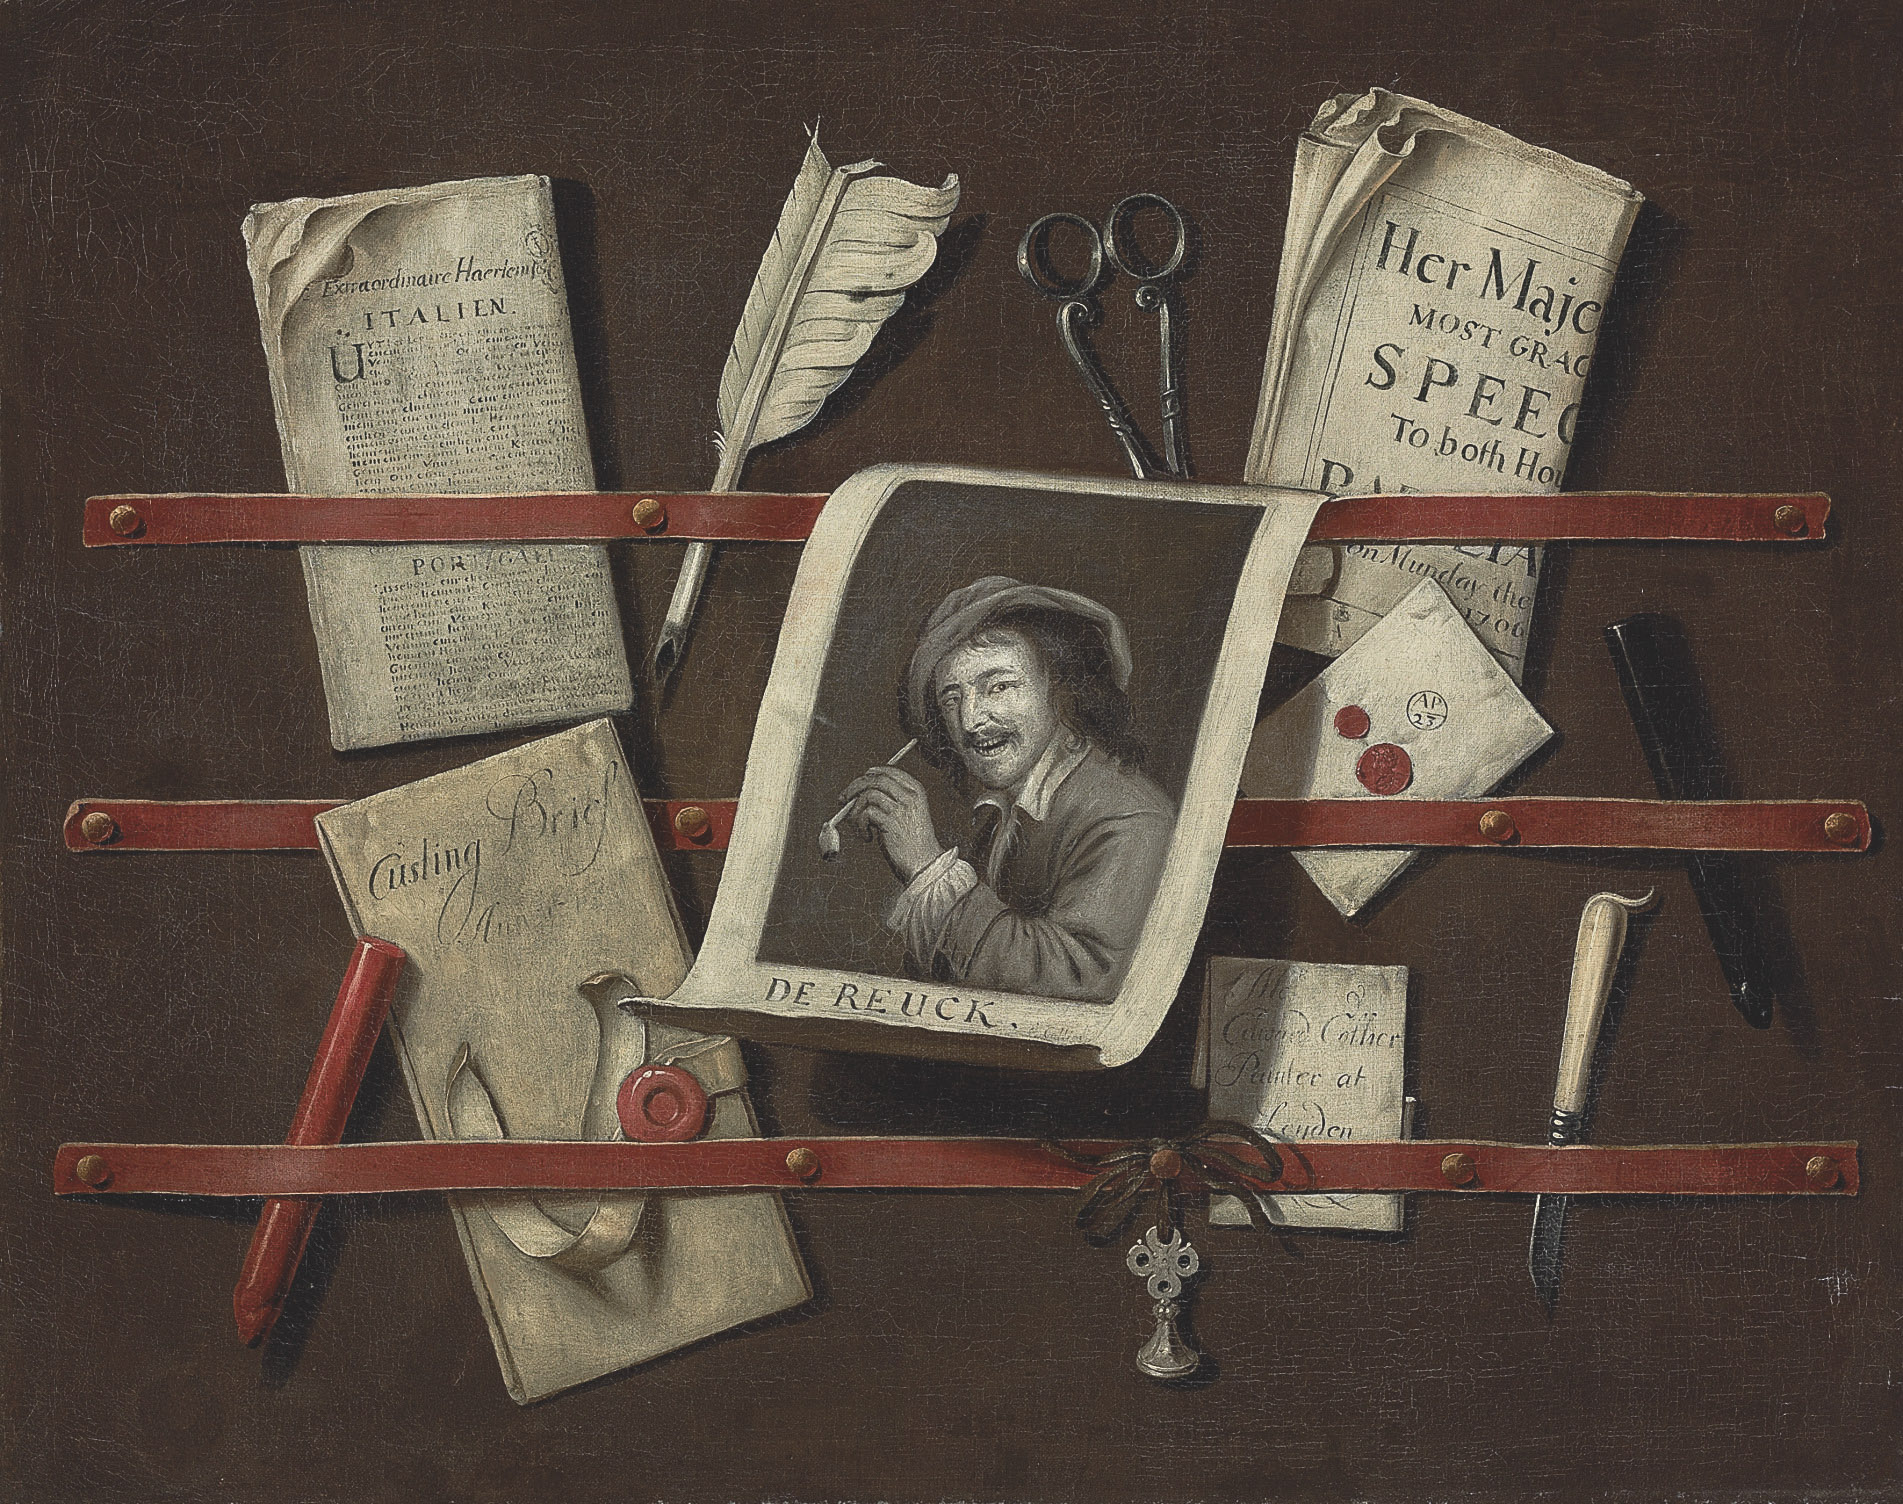 A trompe l'oeil still life of a letter rack - an engraving, a Dutch and an English newspaper, sealed letters, a feather quill, red and black sealing wax, a silver seal, scissors and a pen knife